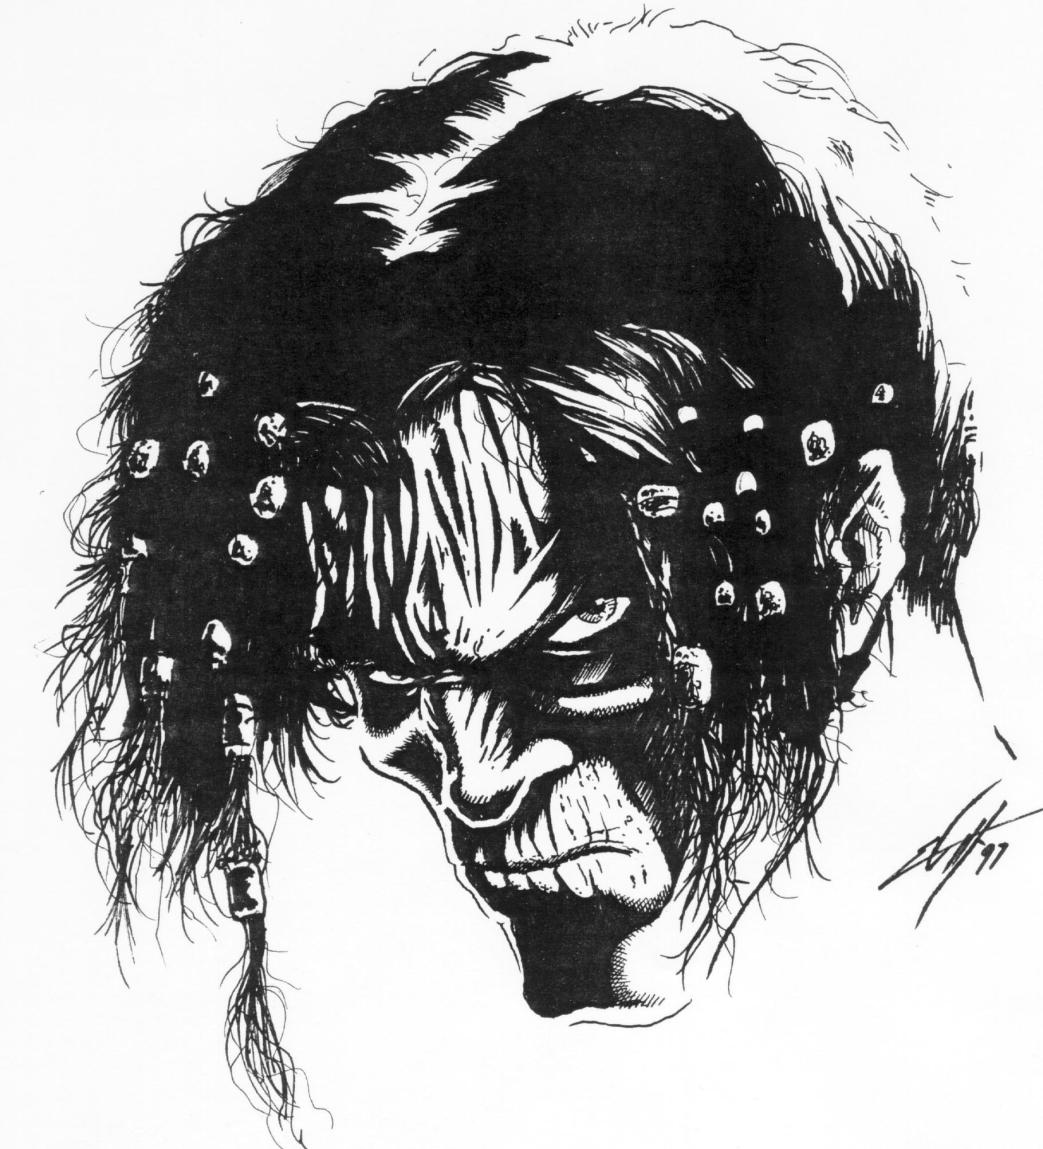 Planescape Torment Sketch - Nameless One schizzo preparatorio by Chris Avellone (1999)